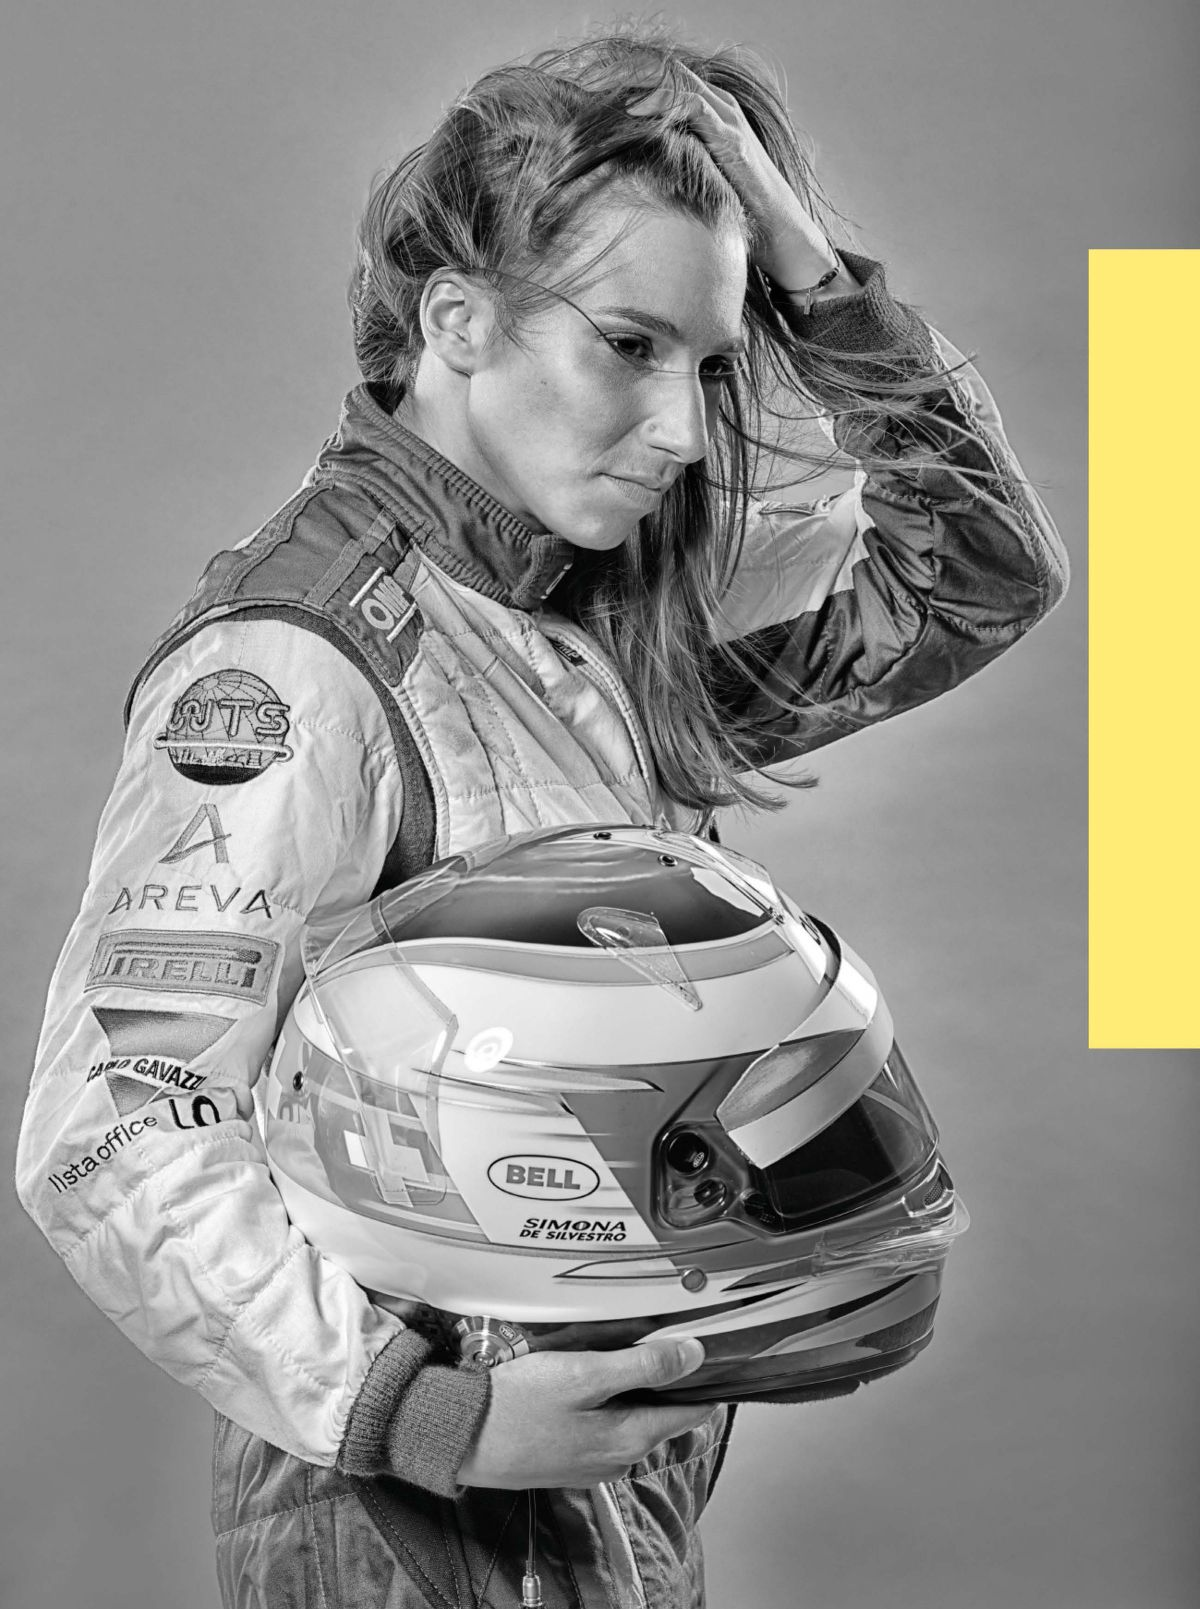 SIMONA DE SILVESTRO in F1 Racing Magazine, September 2014 Issue